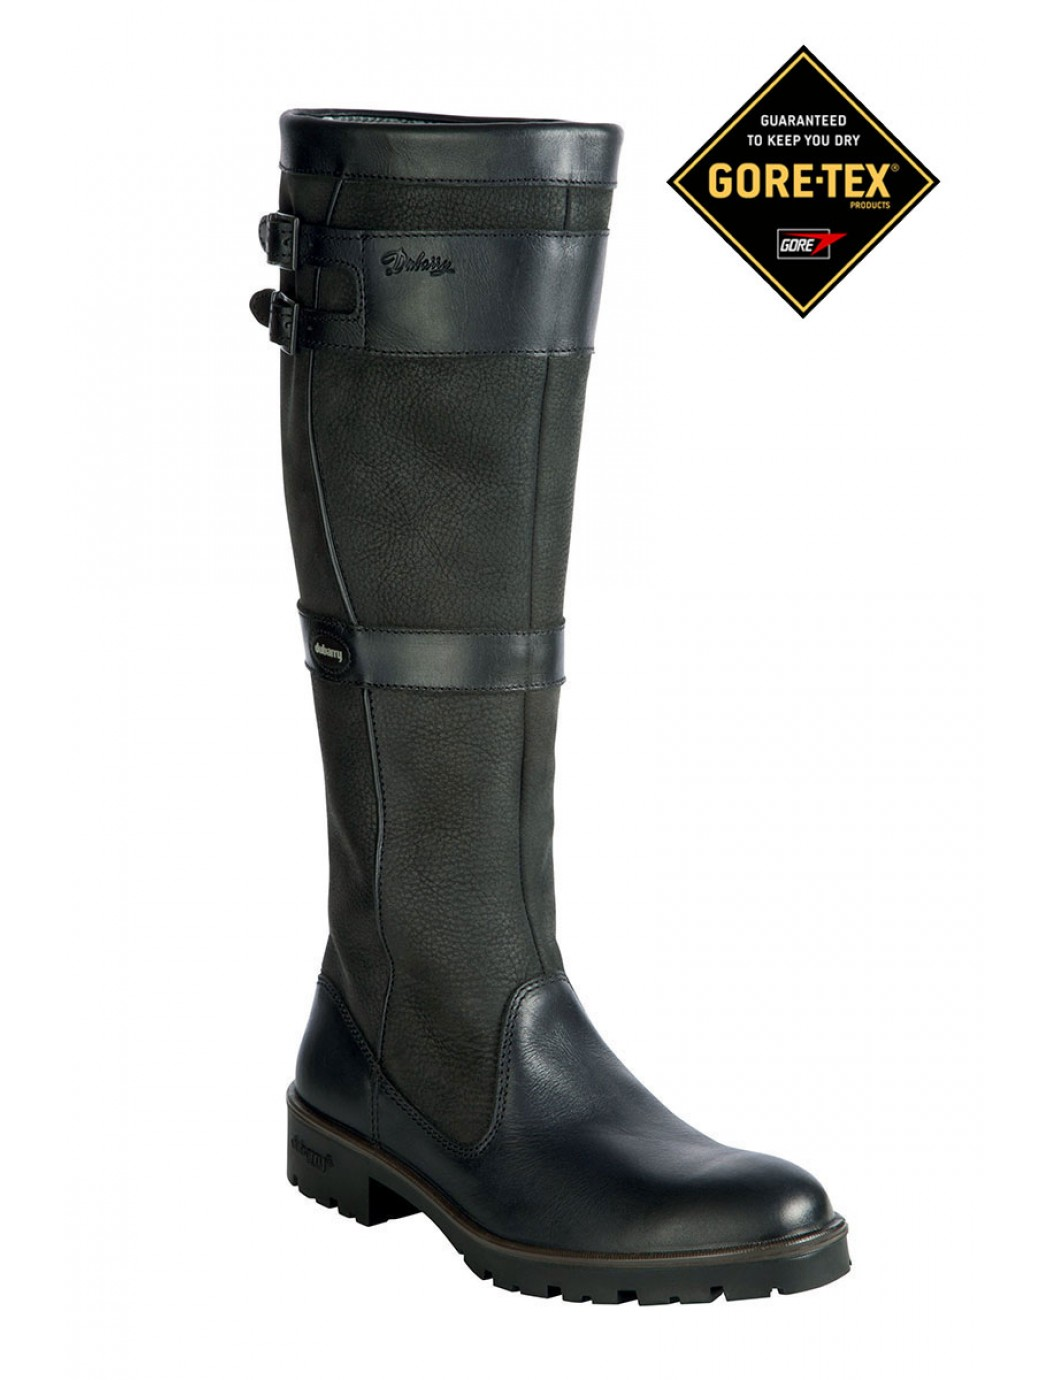 longford-country-boots-black 1